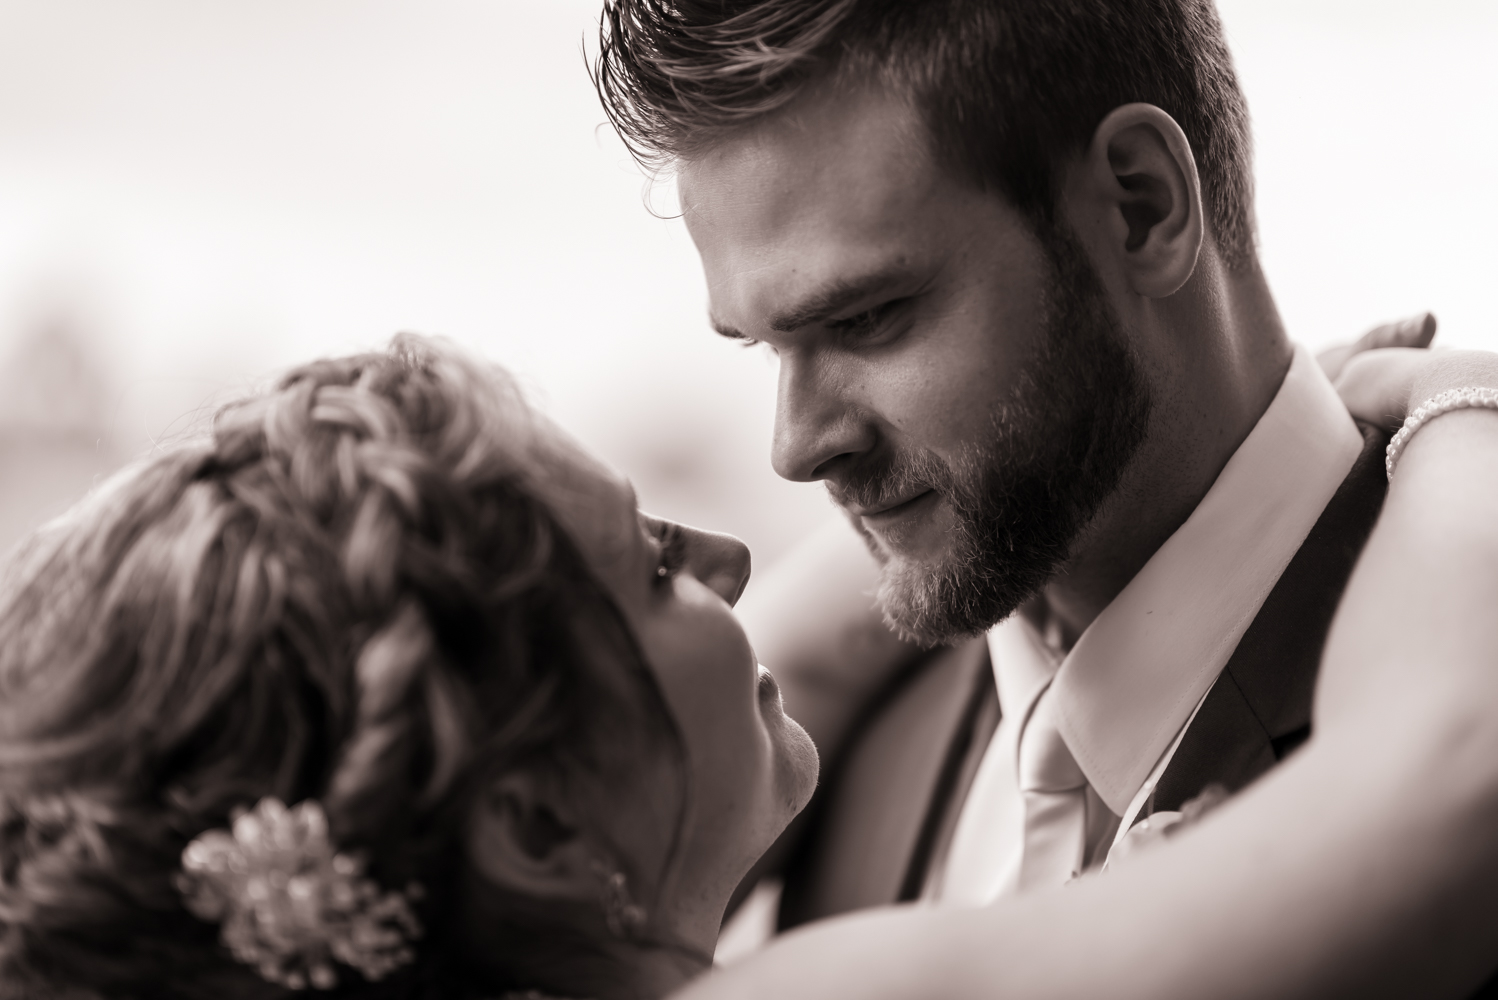 The bride and groom looking into one anothers' eyes during their first dance as newlyweds.